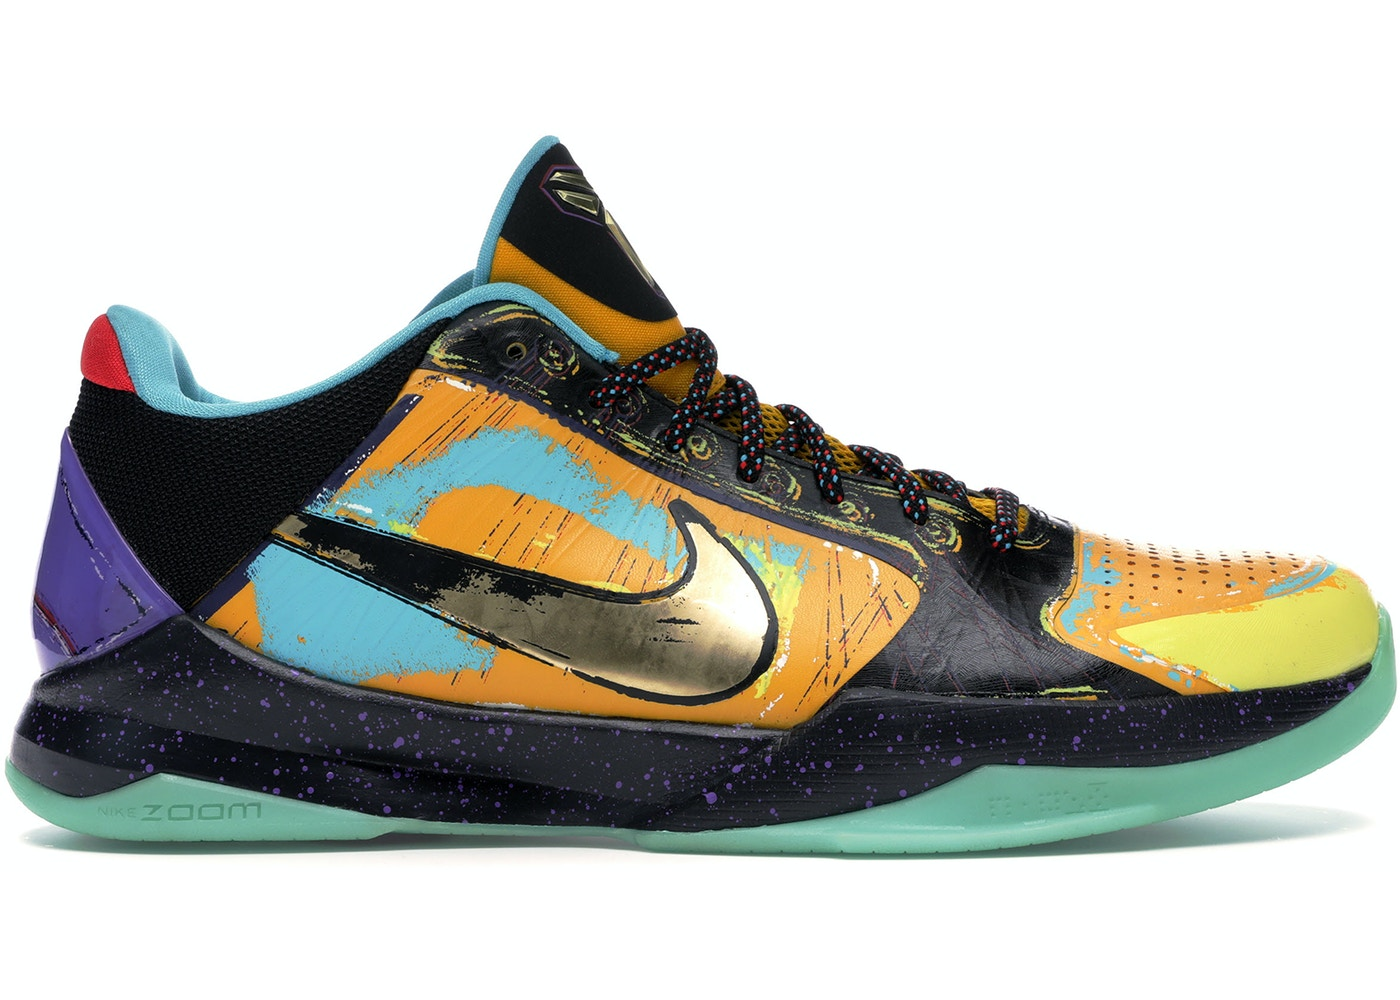 check out 95380 49a7d Kobe 5 Prelude (Finals MVP) - 639691-700